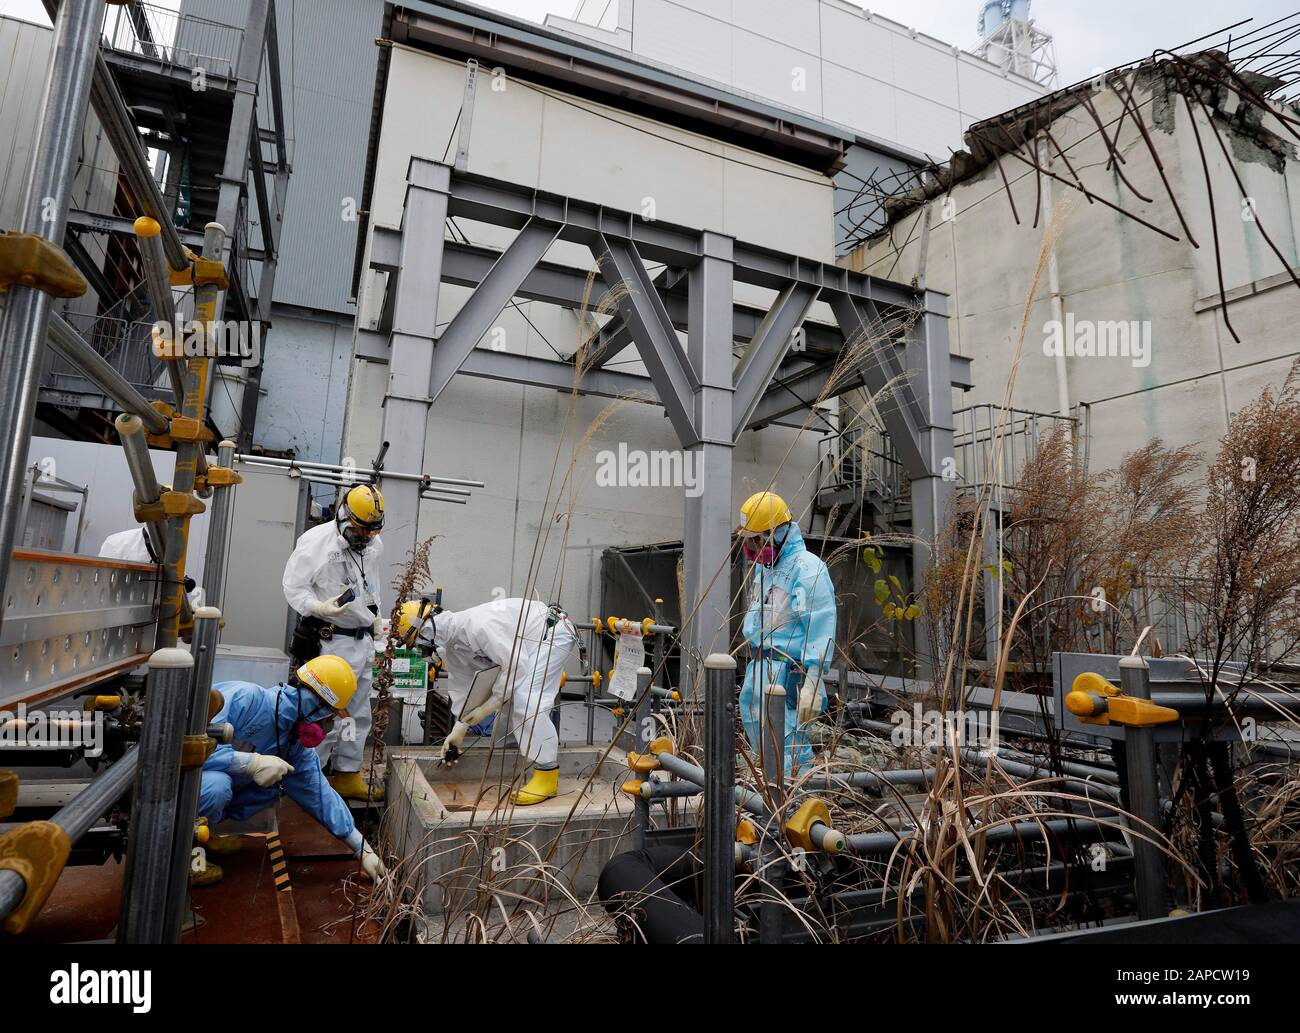 Okuma, Fukushima, Japan. 22nd Jan, 2020. Workers checks drain at Unit 4 building of tsunami-devastated Tokyo Electric Power Company (TEPCO) Fukushima Daiichi Nuclear Power Plant in Okuma town, Fukushima Prefecture, 22 January 2020. The storage tanks including water processed in the ALPS will be full around summer of 2022, TEPCO has told. Japanese government need to decide soon how manage the processed water still including tritium. Credit: Kimimasa Mayama/POOL/ZUMA Wire/Alamy Live News Stock Photo